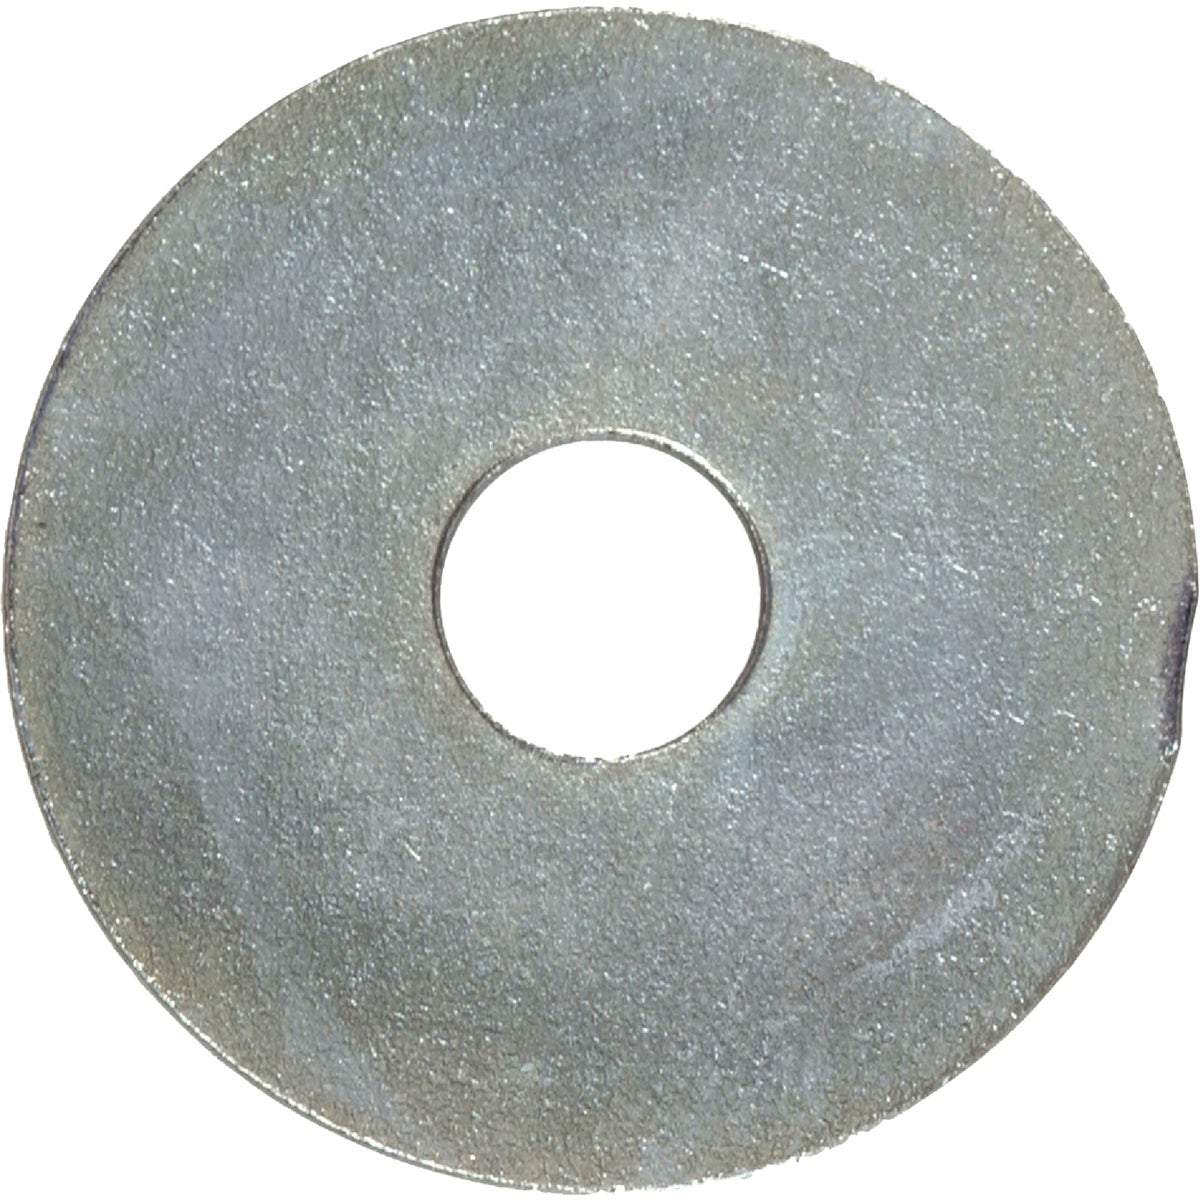 5/16X1-1/2 FENDER WASHER - 290027 by Hillman Fastener